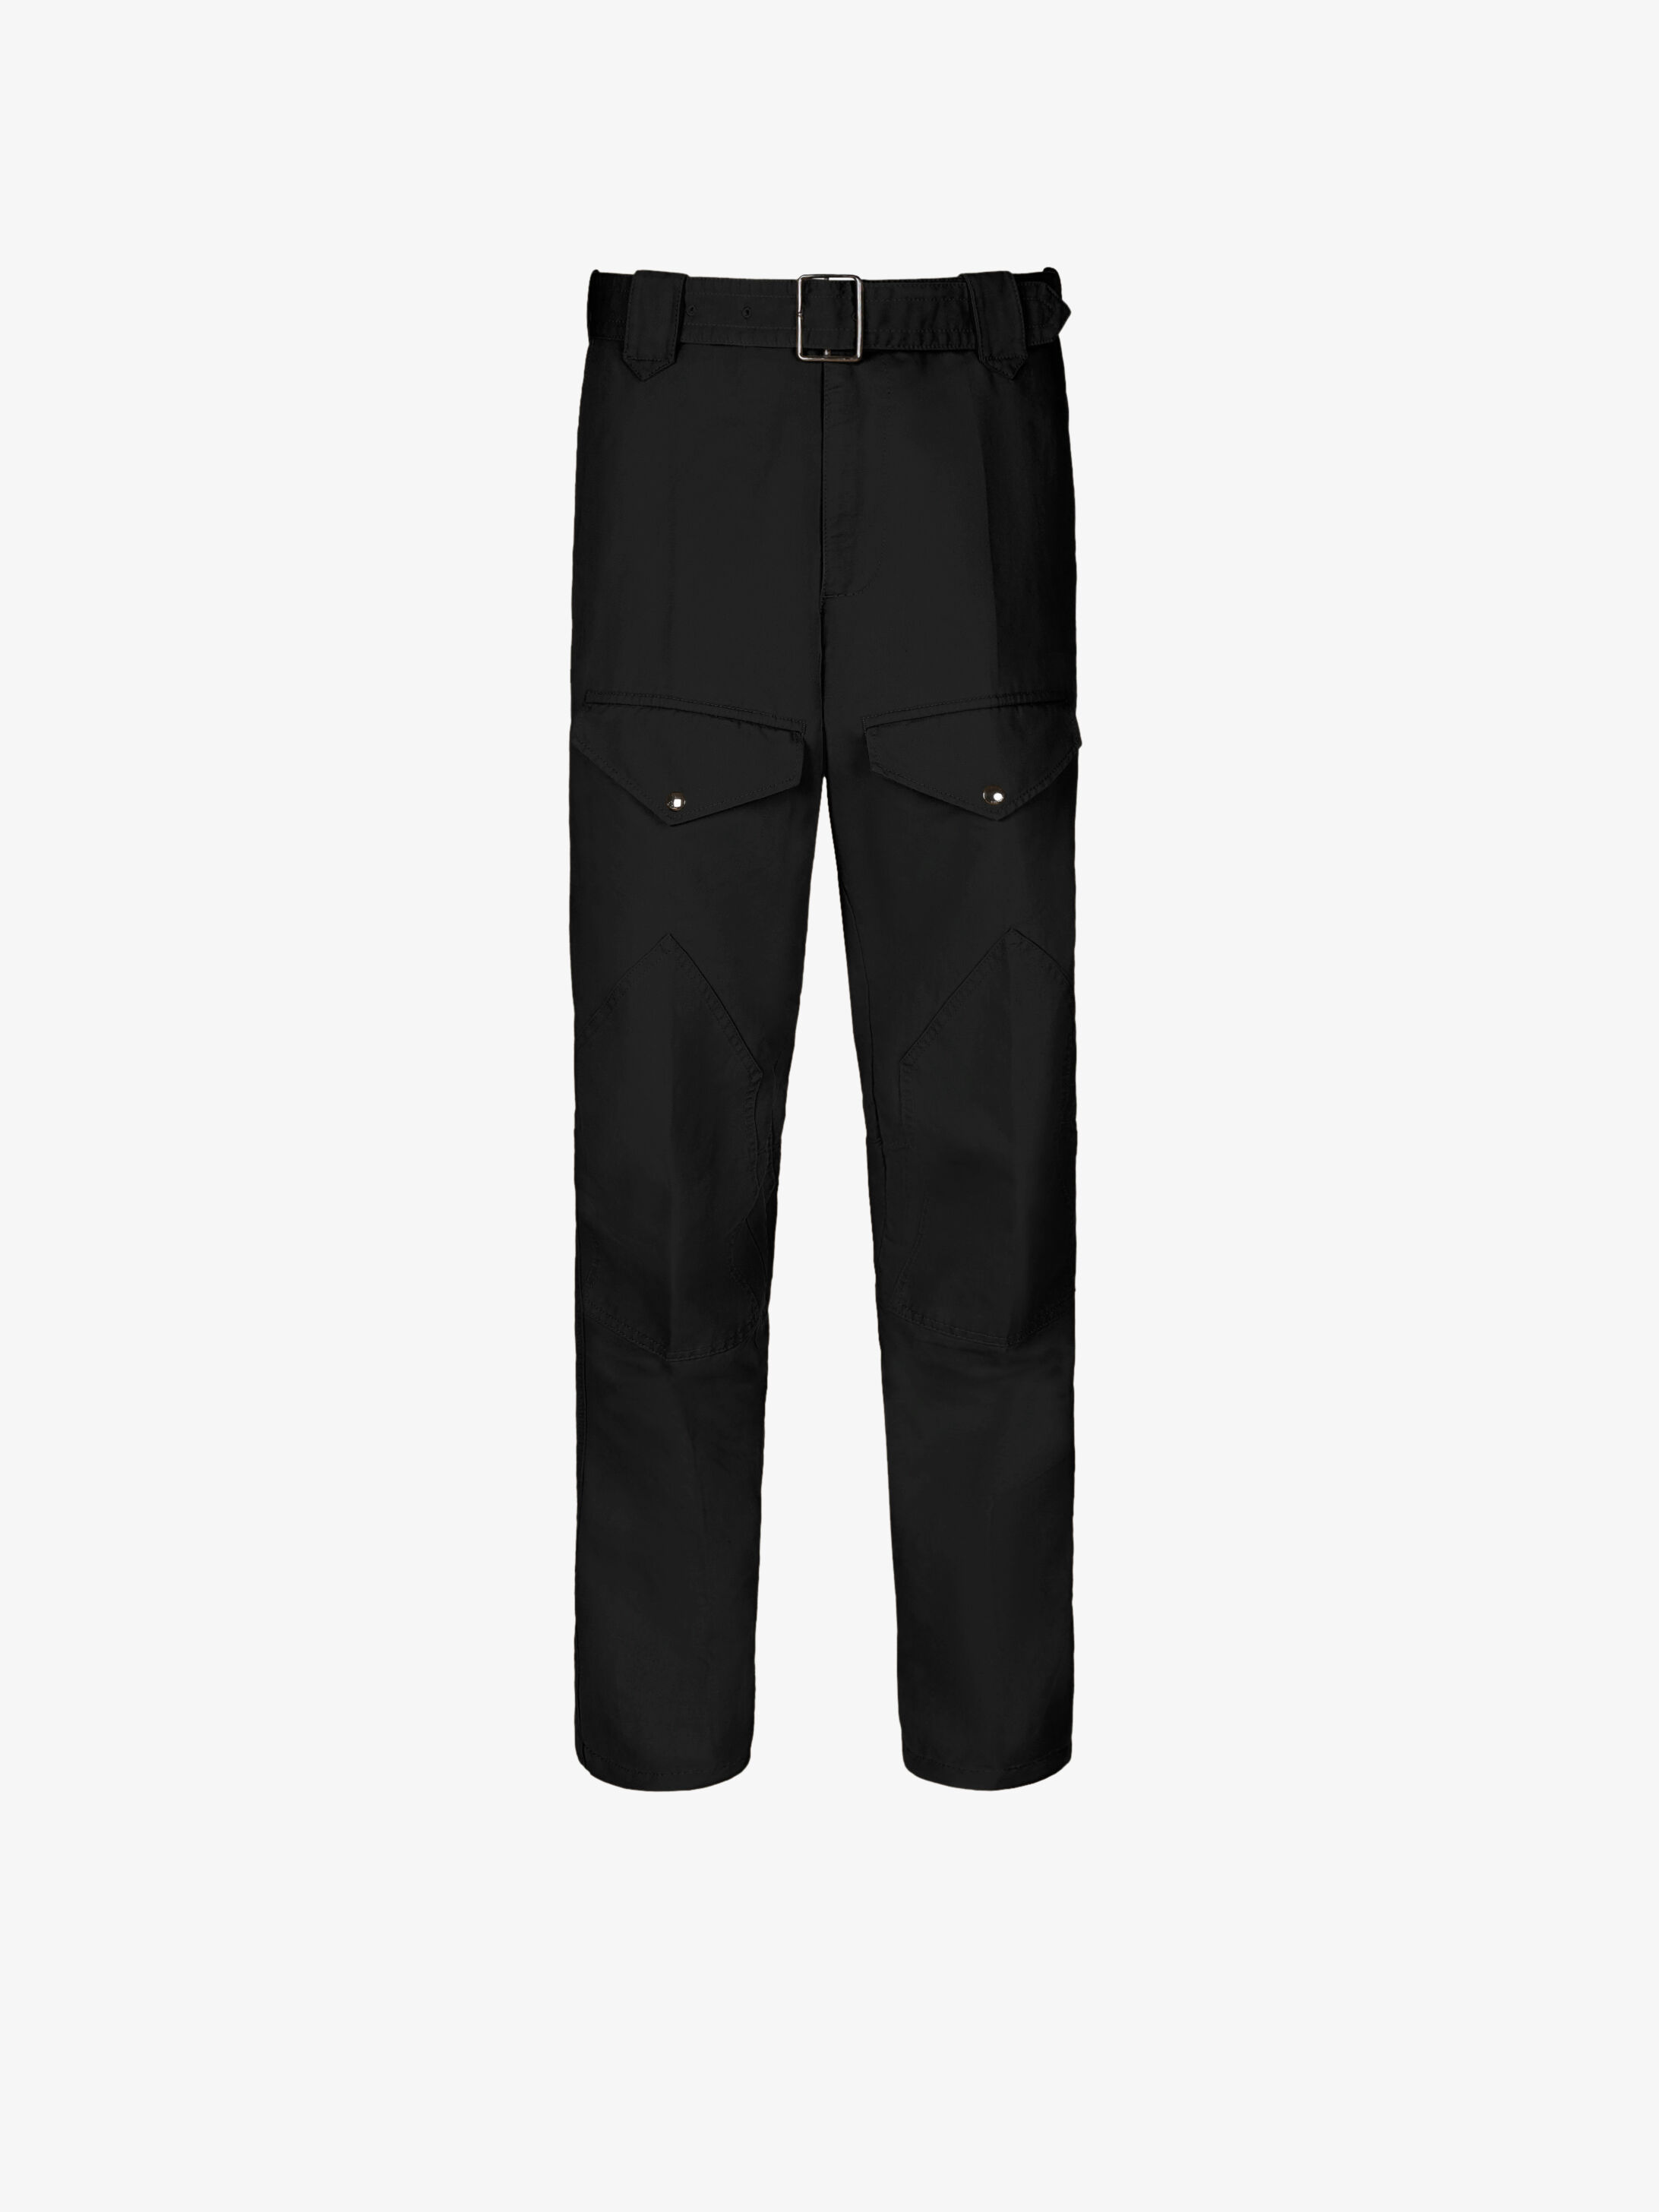 4ed9695c7040 Men s Pants and Shorts collection by Givenchy.